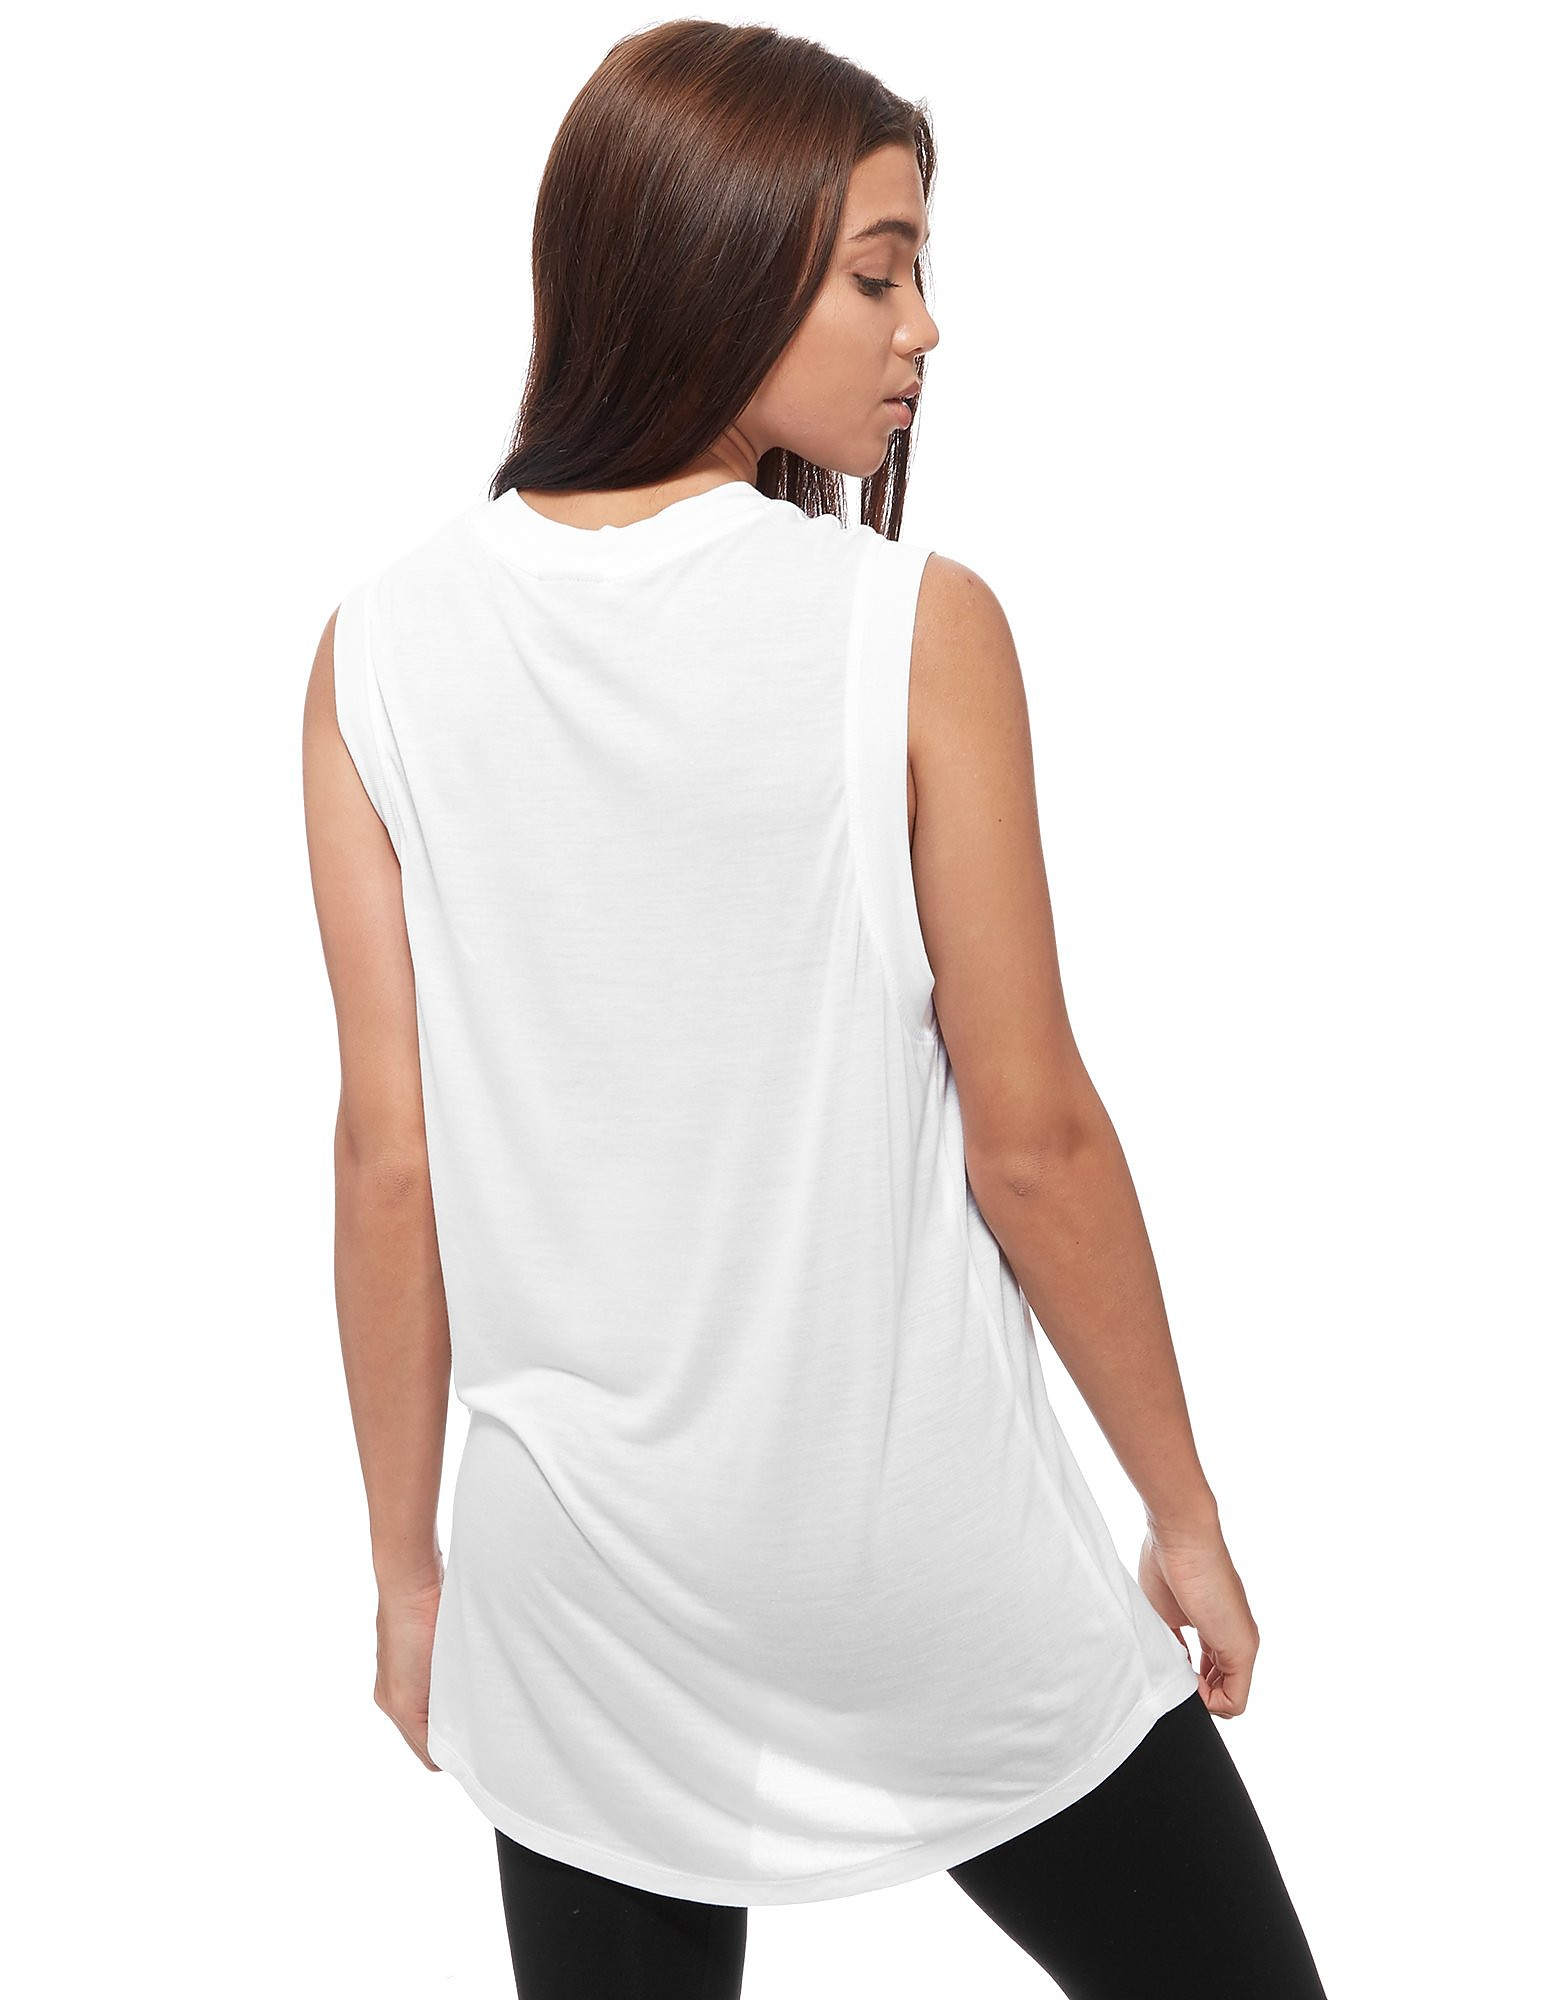 IVY PARK Muscle Tank Canotta Donna